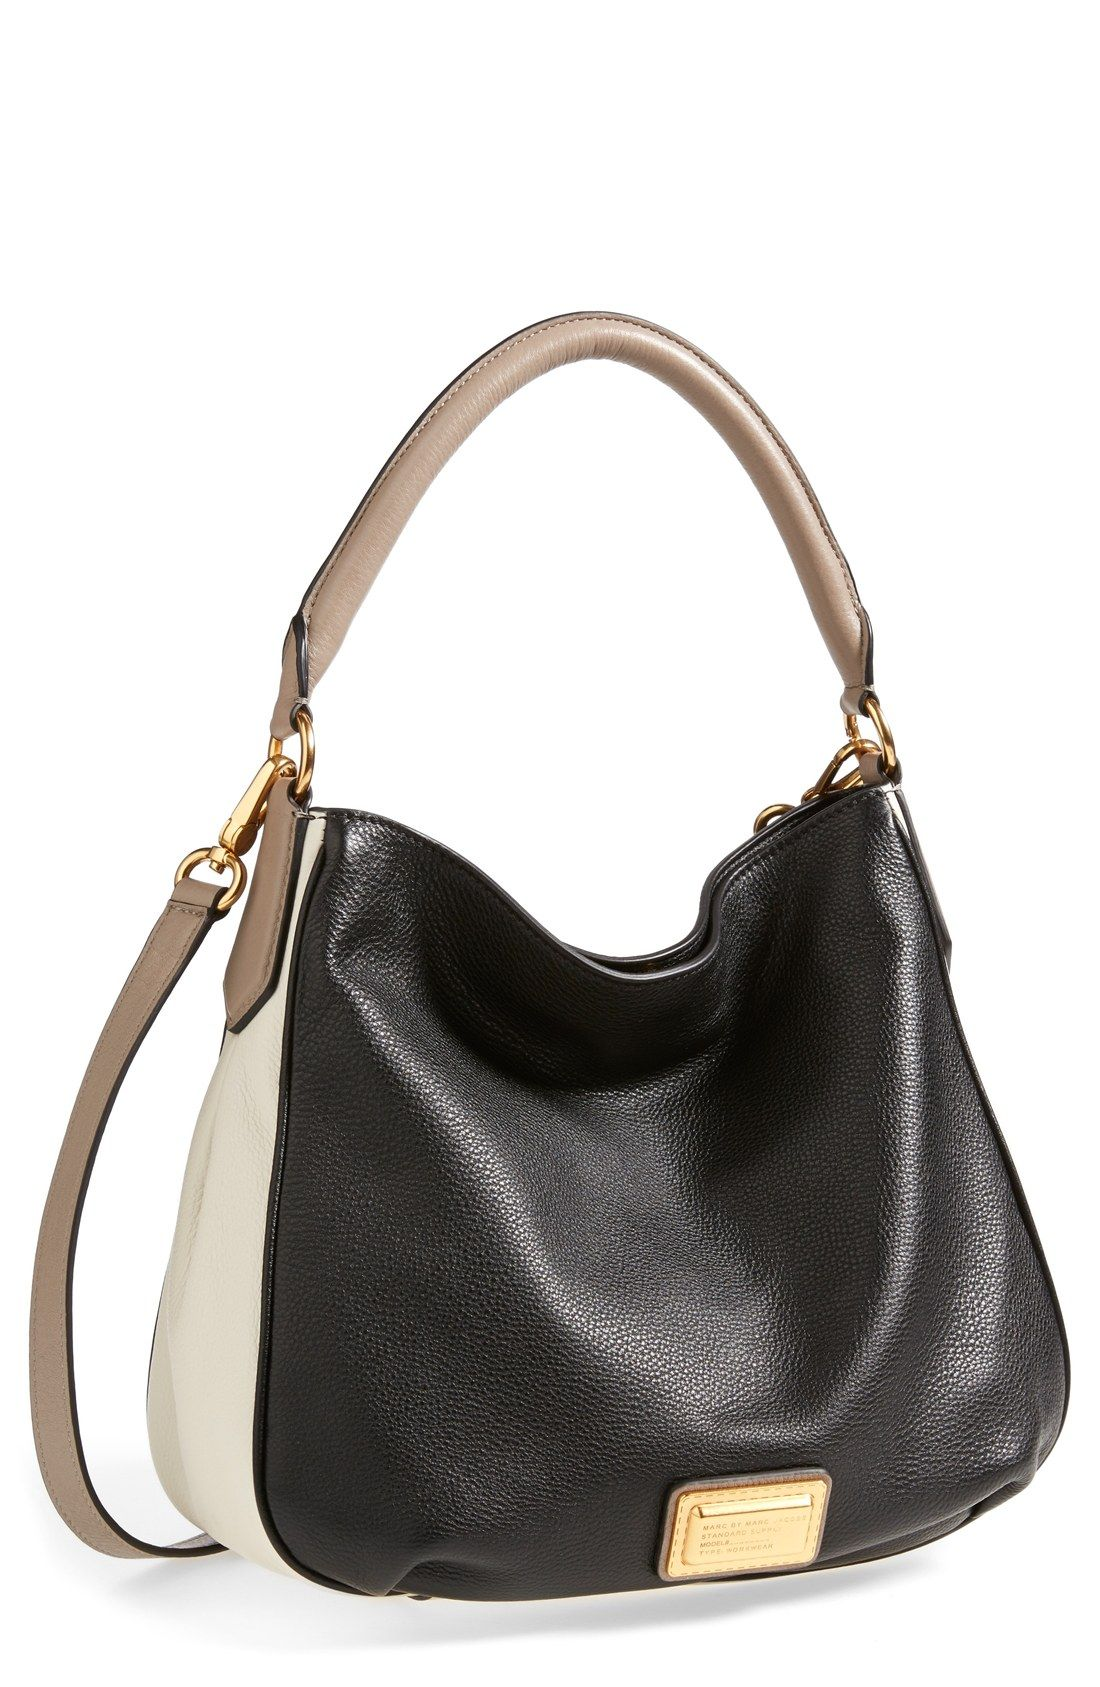 Crushing on this Marc by Marc Jacobs hobo bag!   oh my bag ... 7b57352c7c6